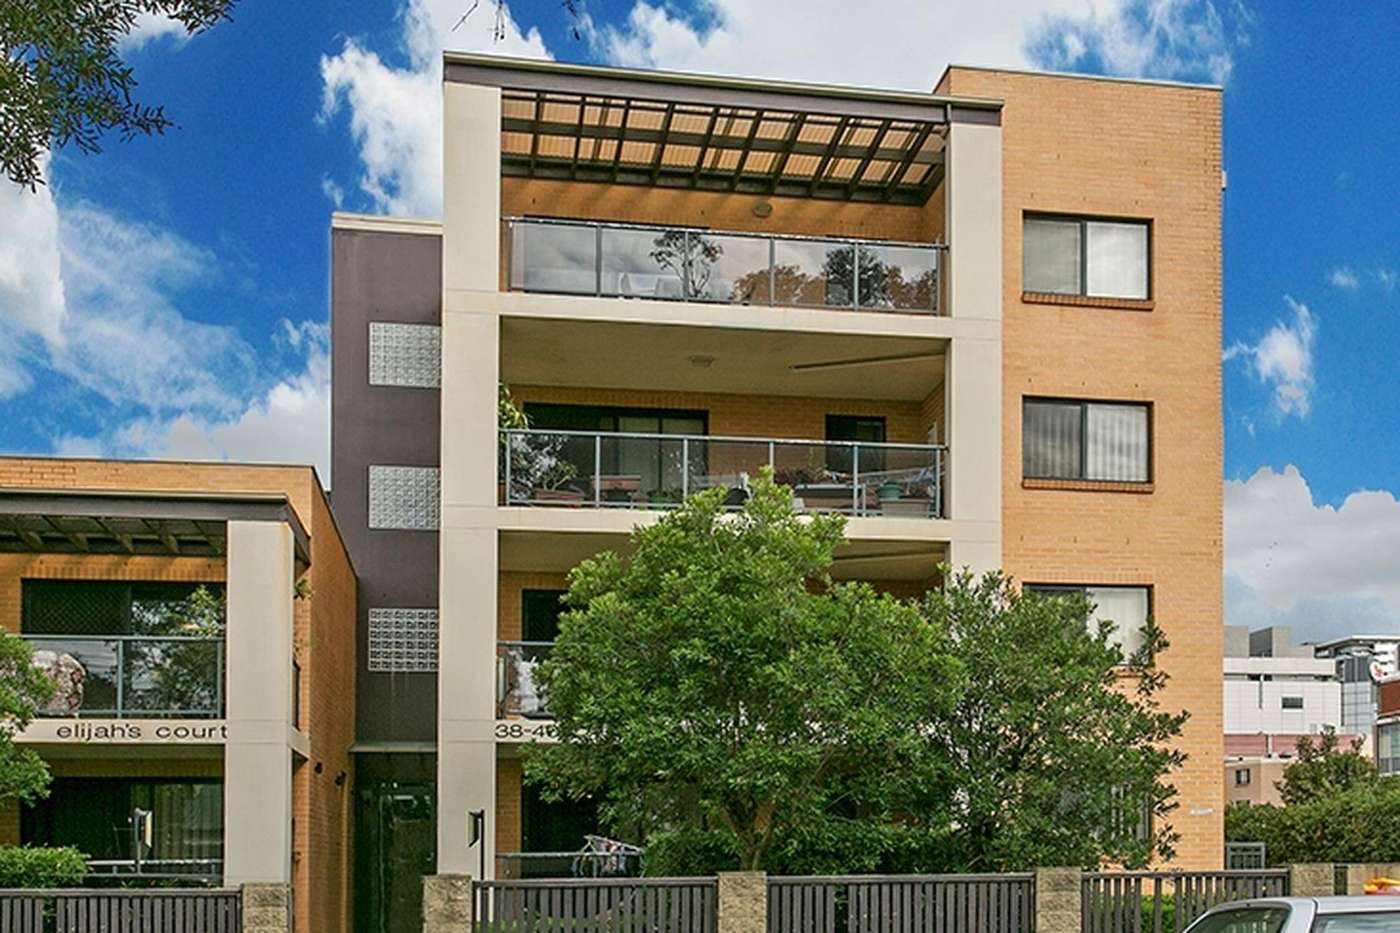 Main view of Homely apartment listing, 16/38-40 Meryla Street, Burwood, NSW 2134